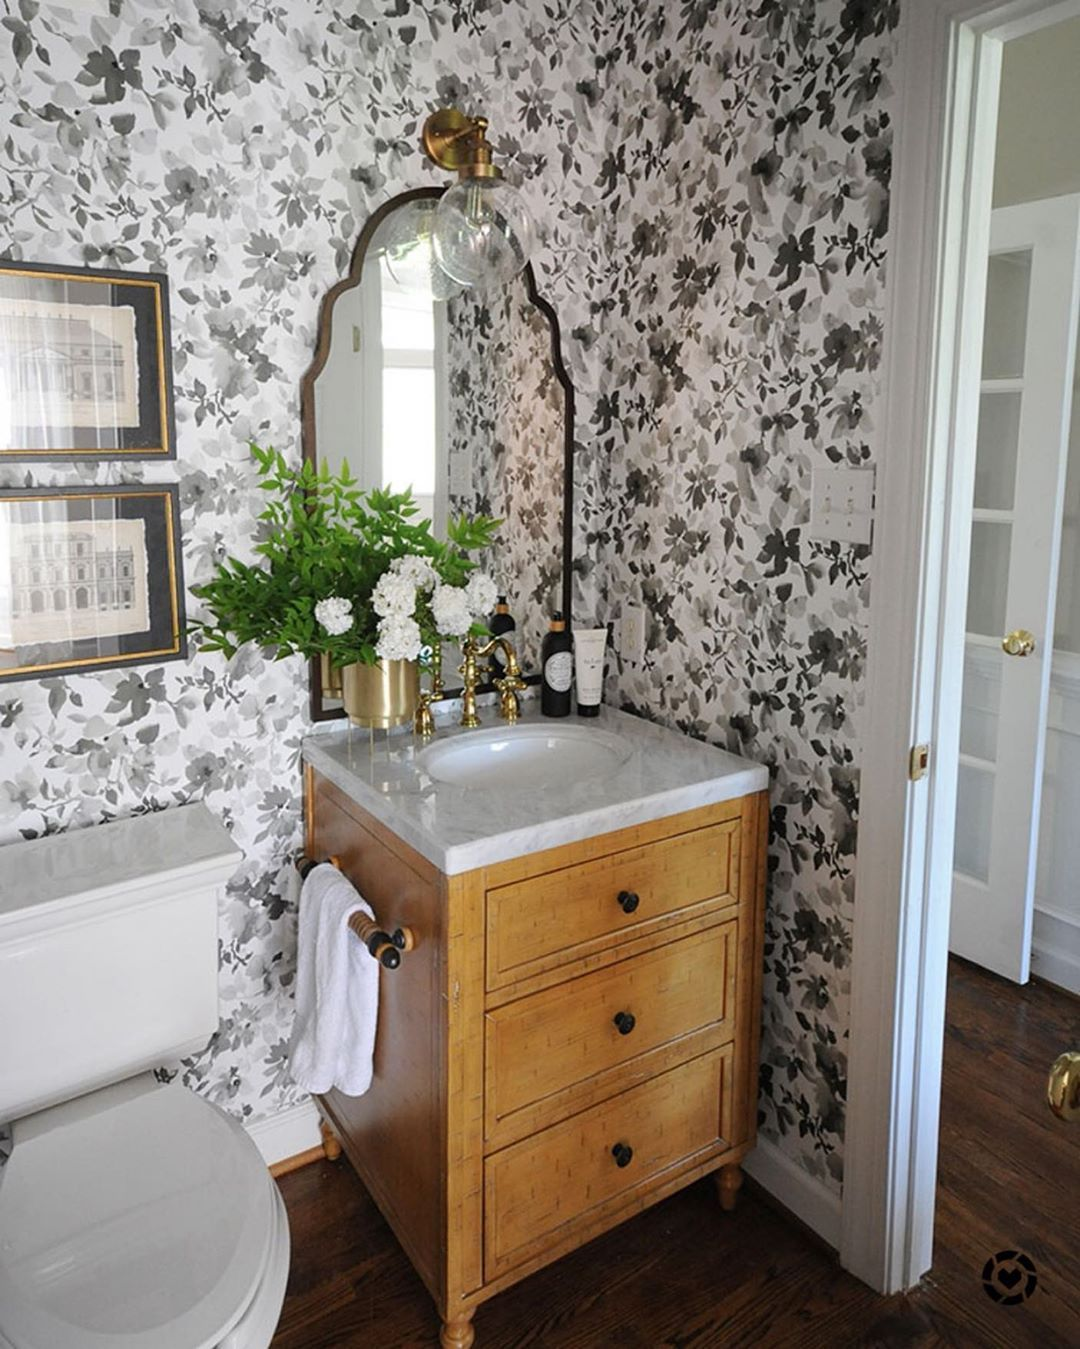 Good Morning Today We Are Sharing All Of The Before And Afters From Our Wayfair1roomreno We Were So Excit Single Bathroom Vanity Bathroom Vanity Dear Lillie